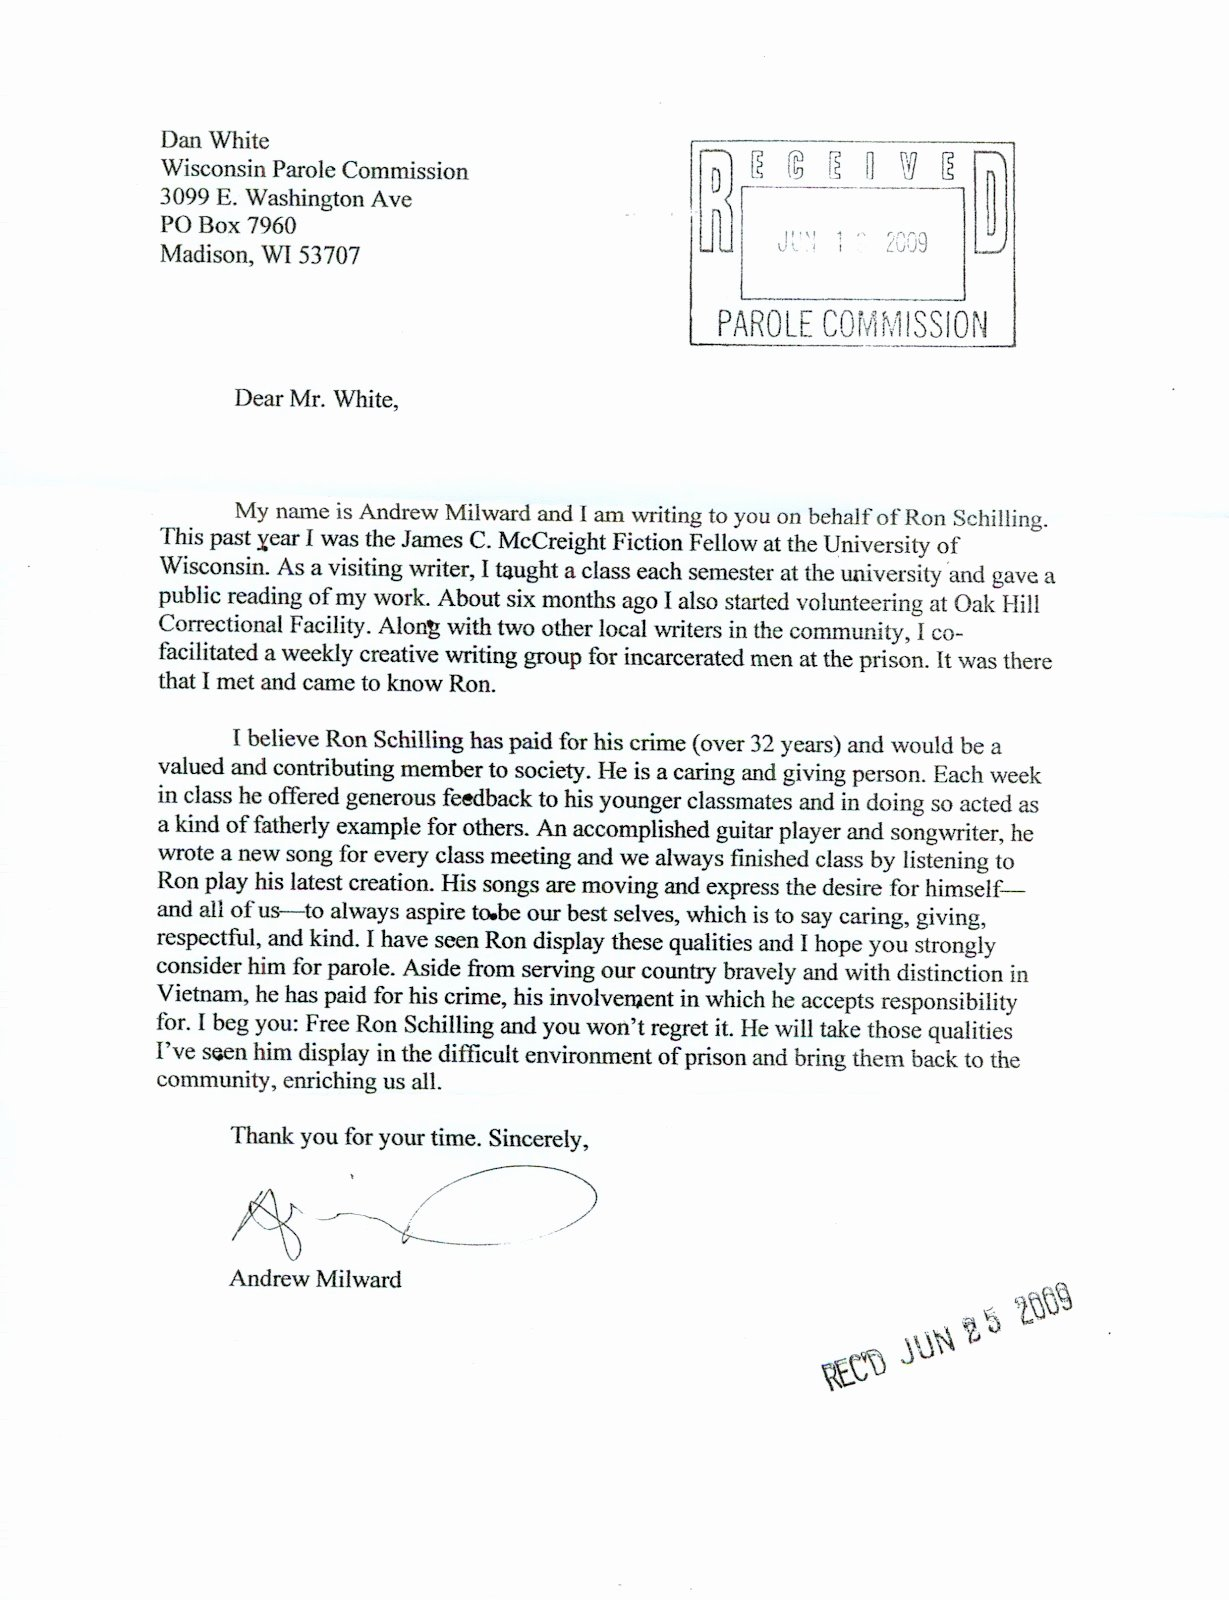 Letter Of Recommendation for Parole Elegant Free Ron Schilling